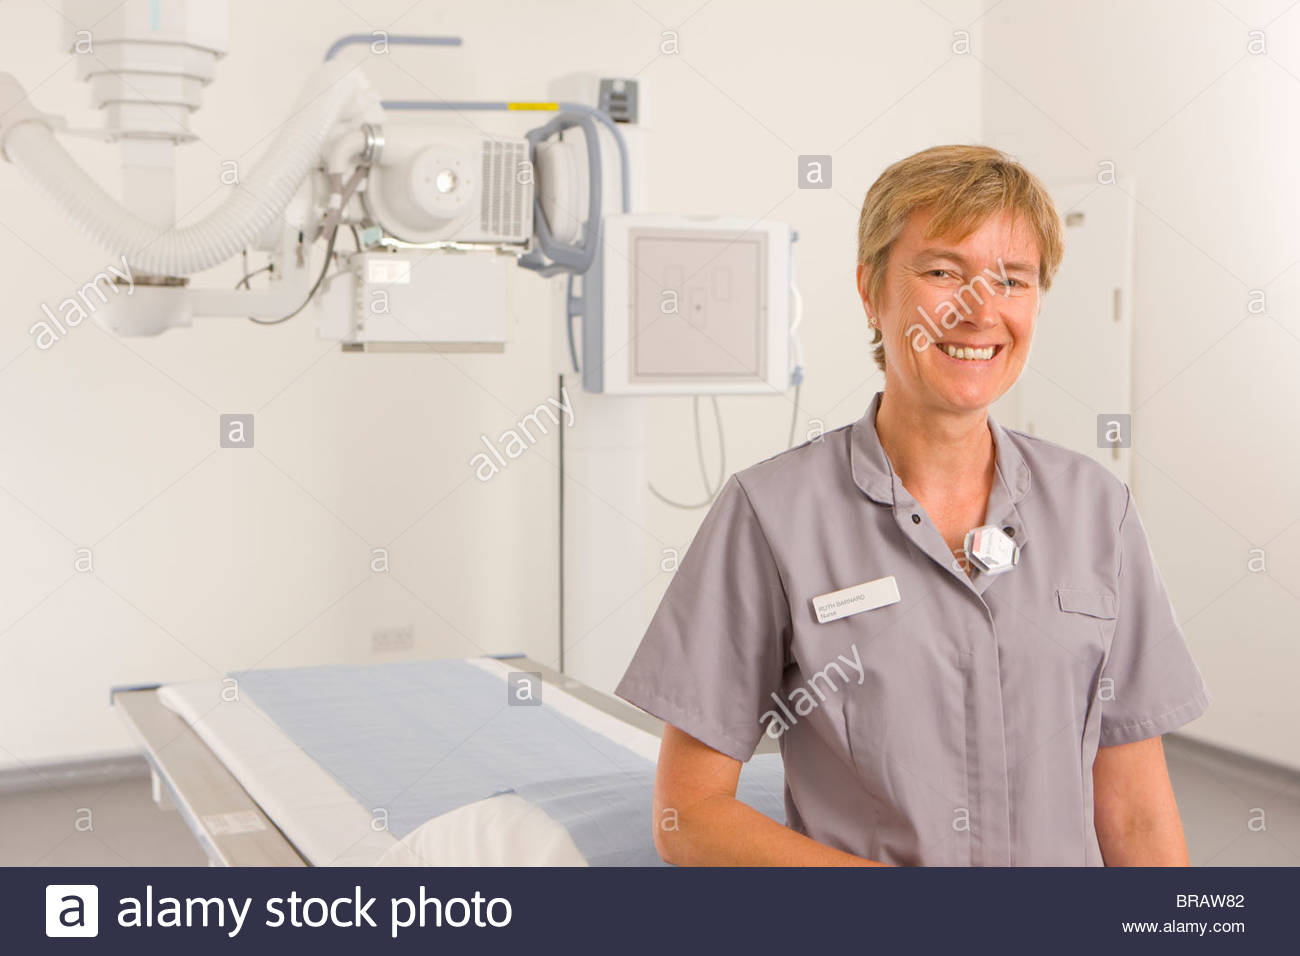 Radiologist standing in radiology department - Stock Image